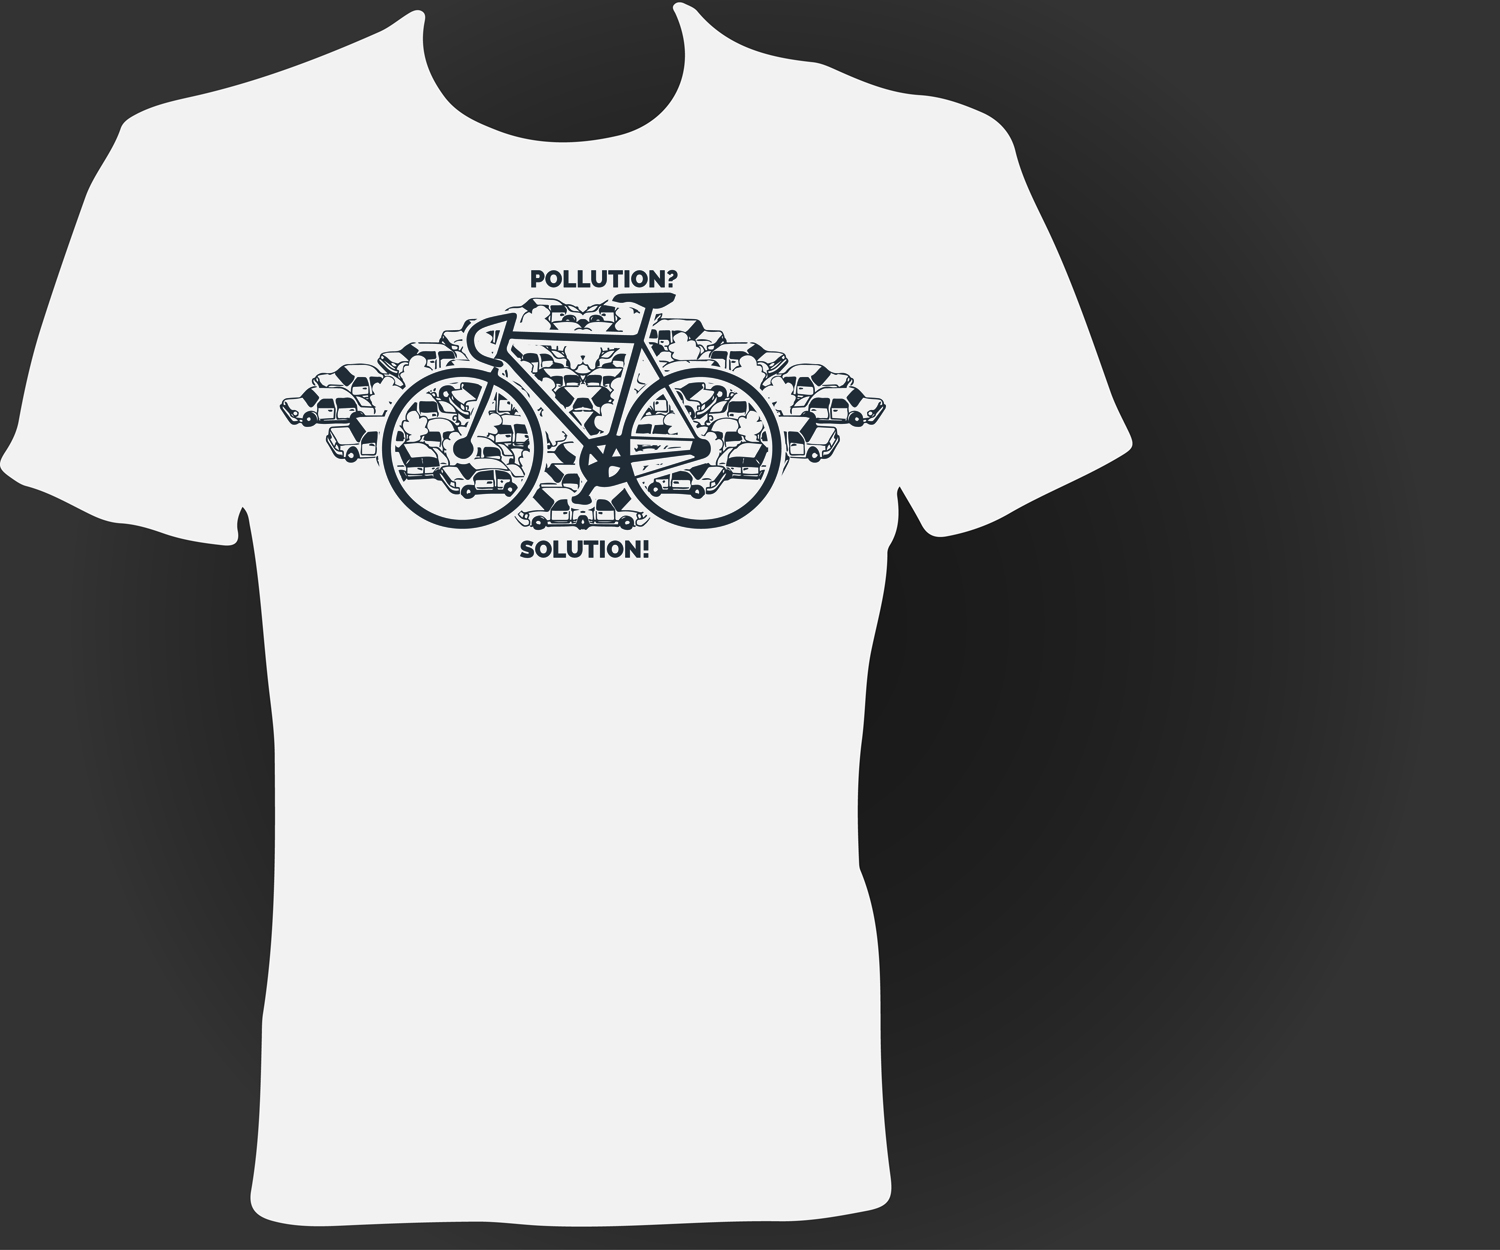 T Shirts Designs Ideas t shirt designs ideas T Shirt Design By Jayneel_s Jayneel_s